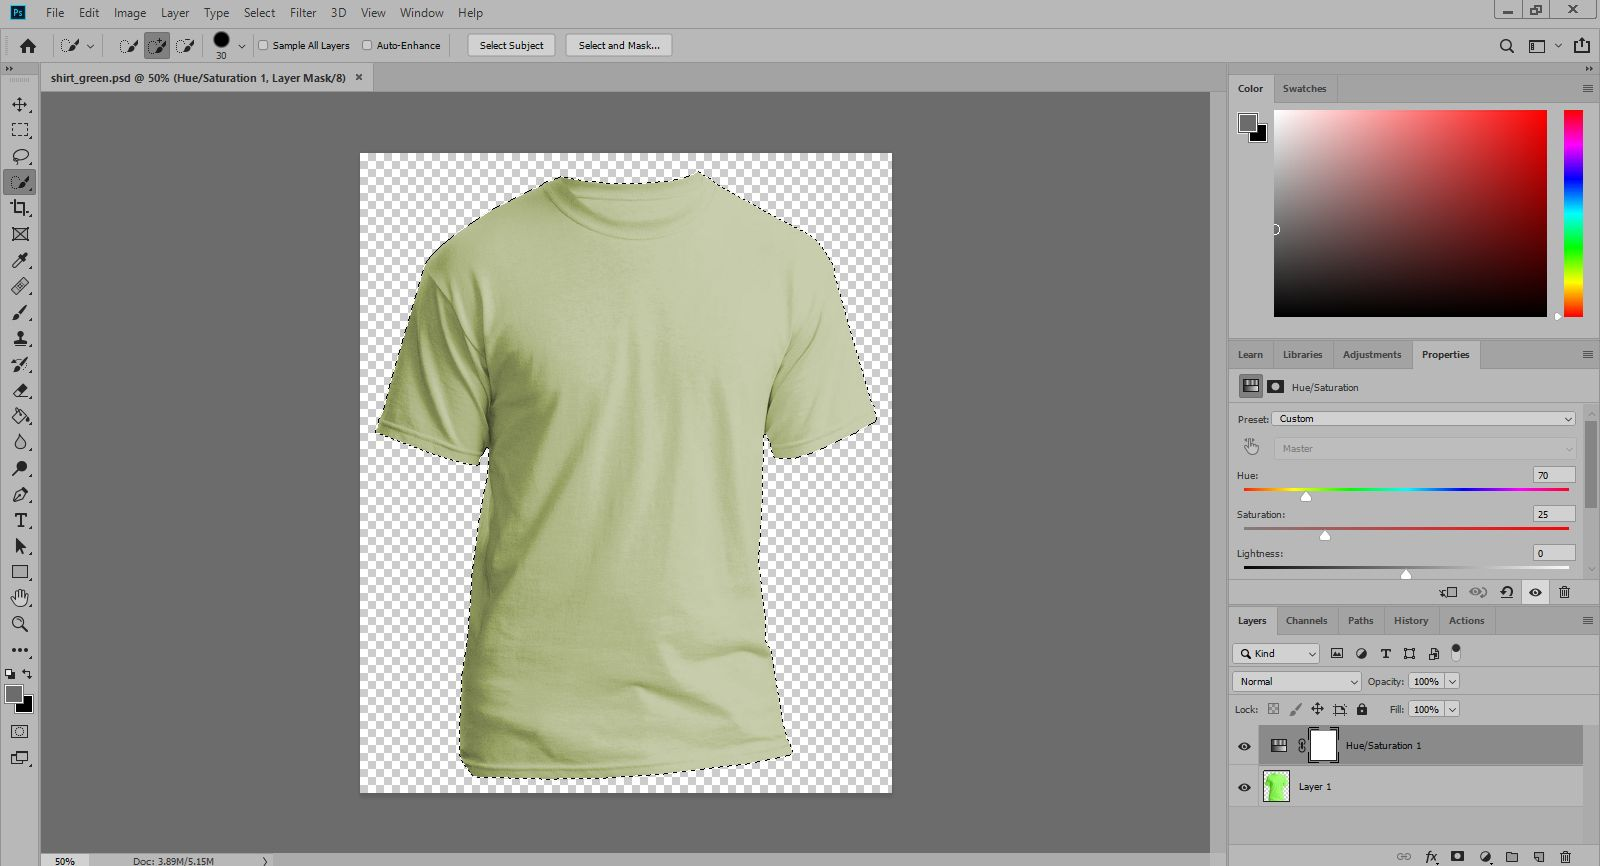 Selecting the tshirt image to apply pattern in Photoshop.